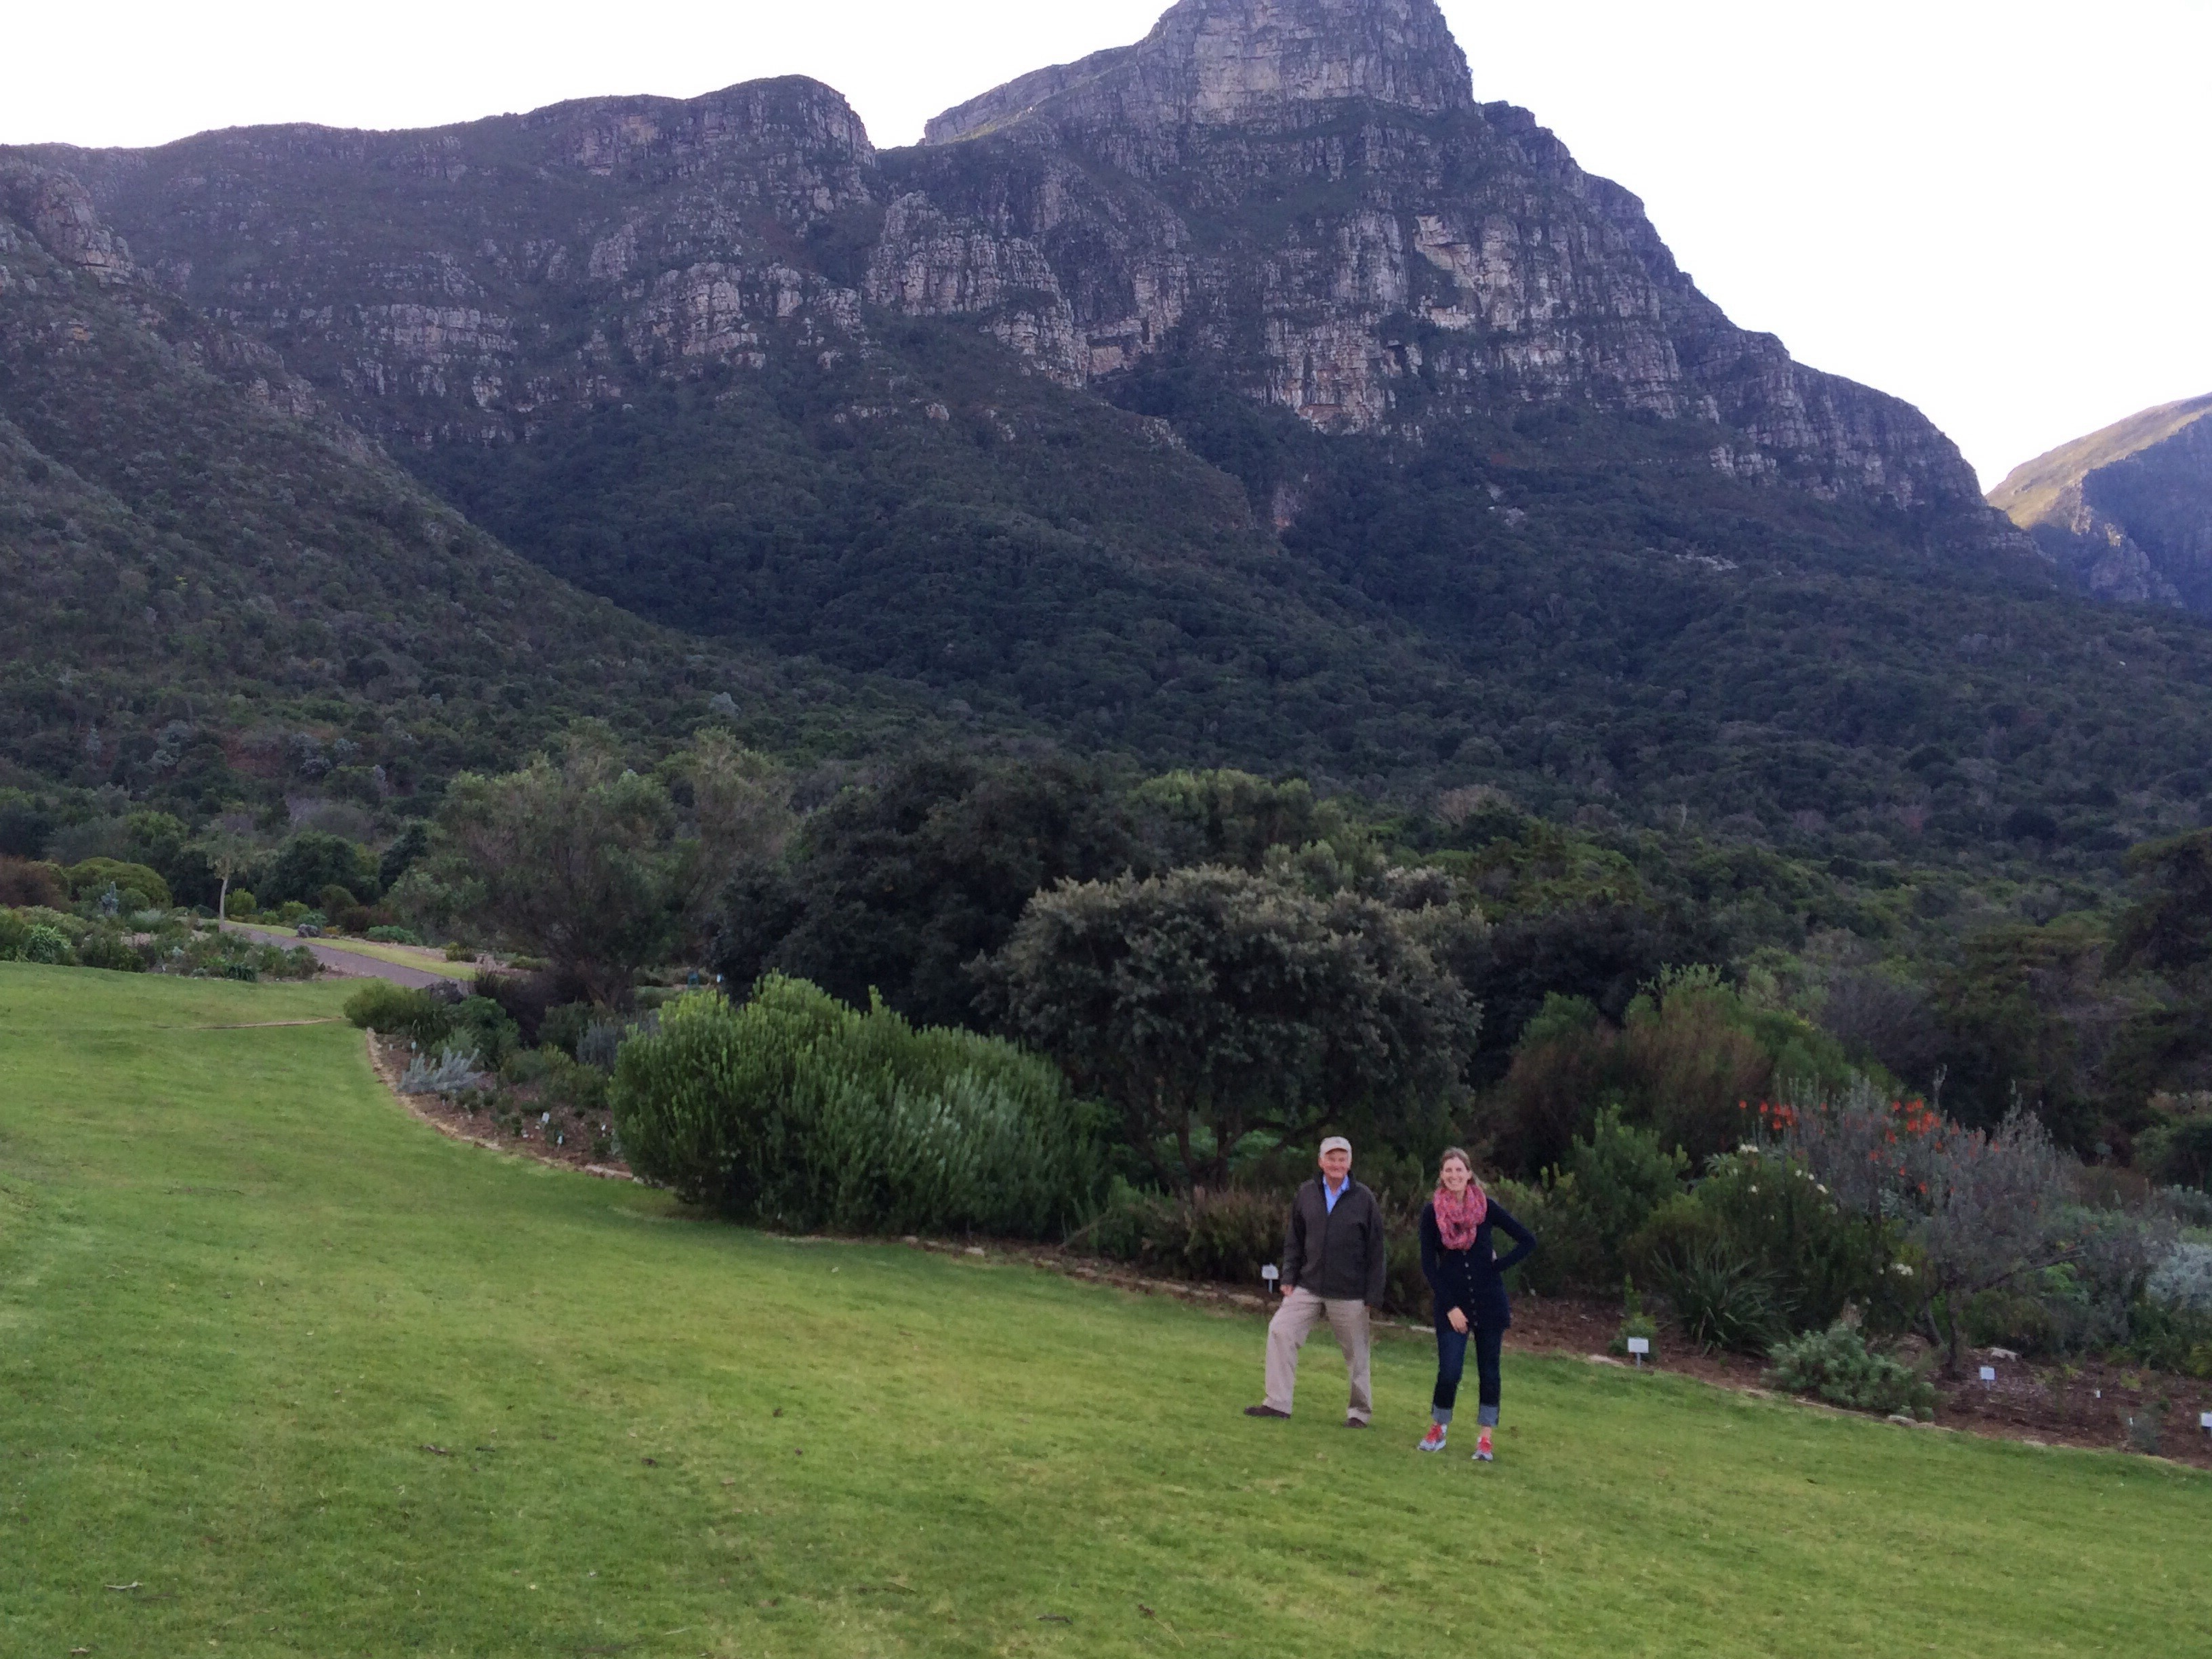 climbing the kirstenbosch gardens in cape town with our guide, graham. he was so amazing!